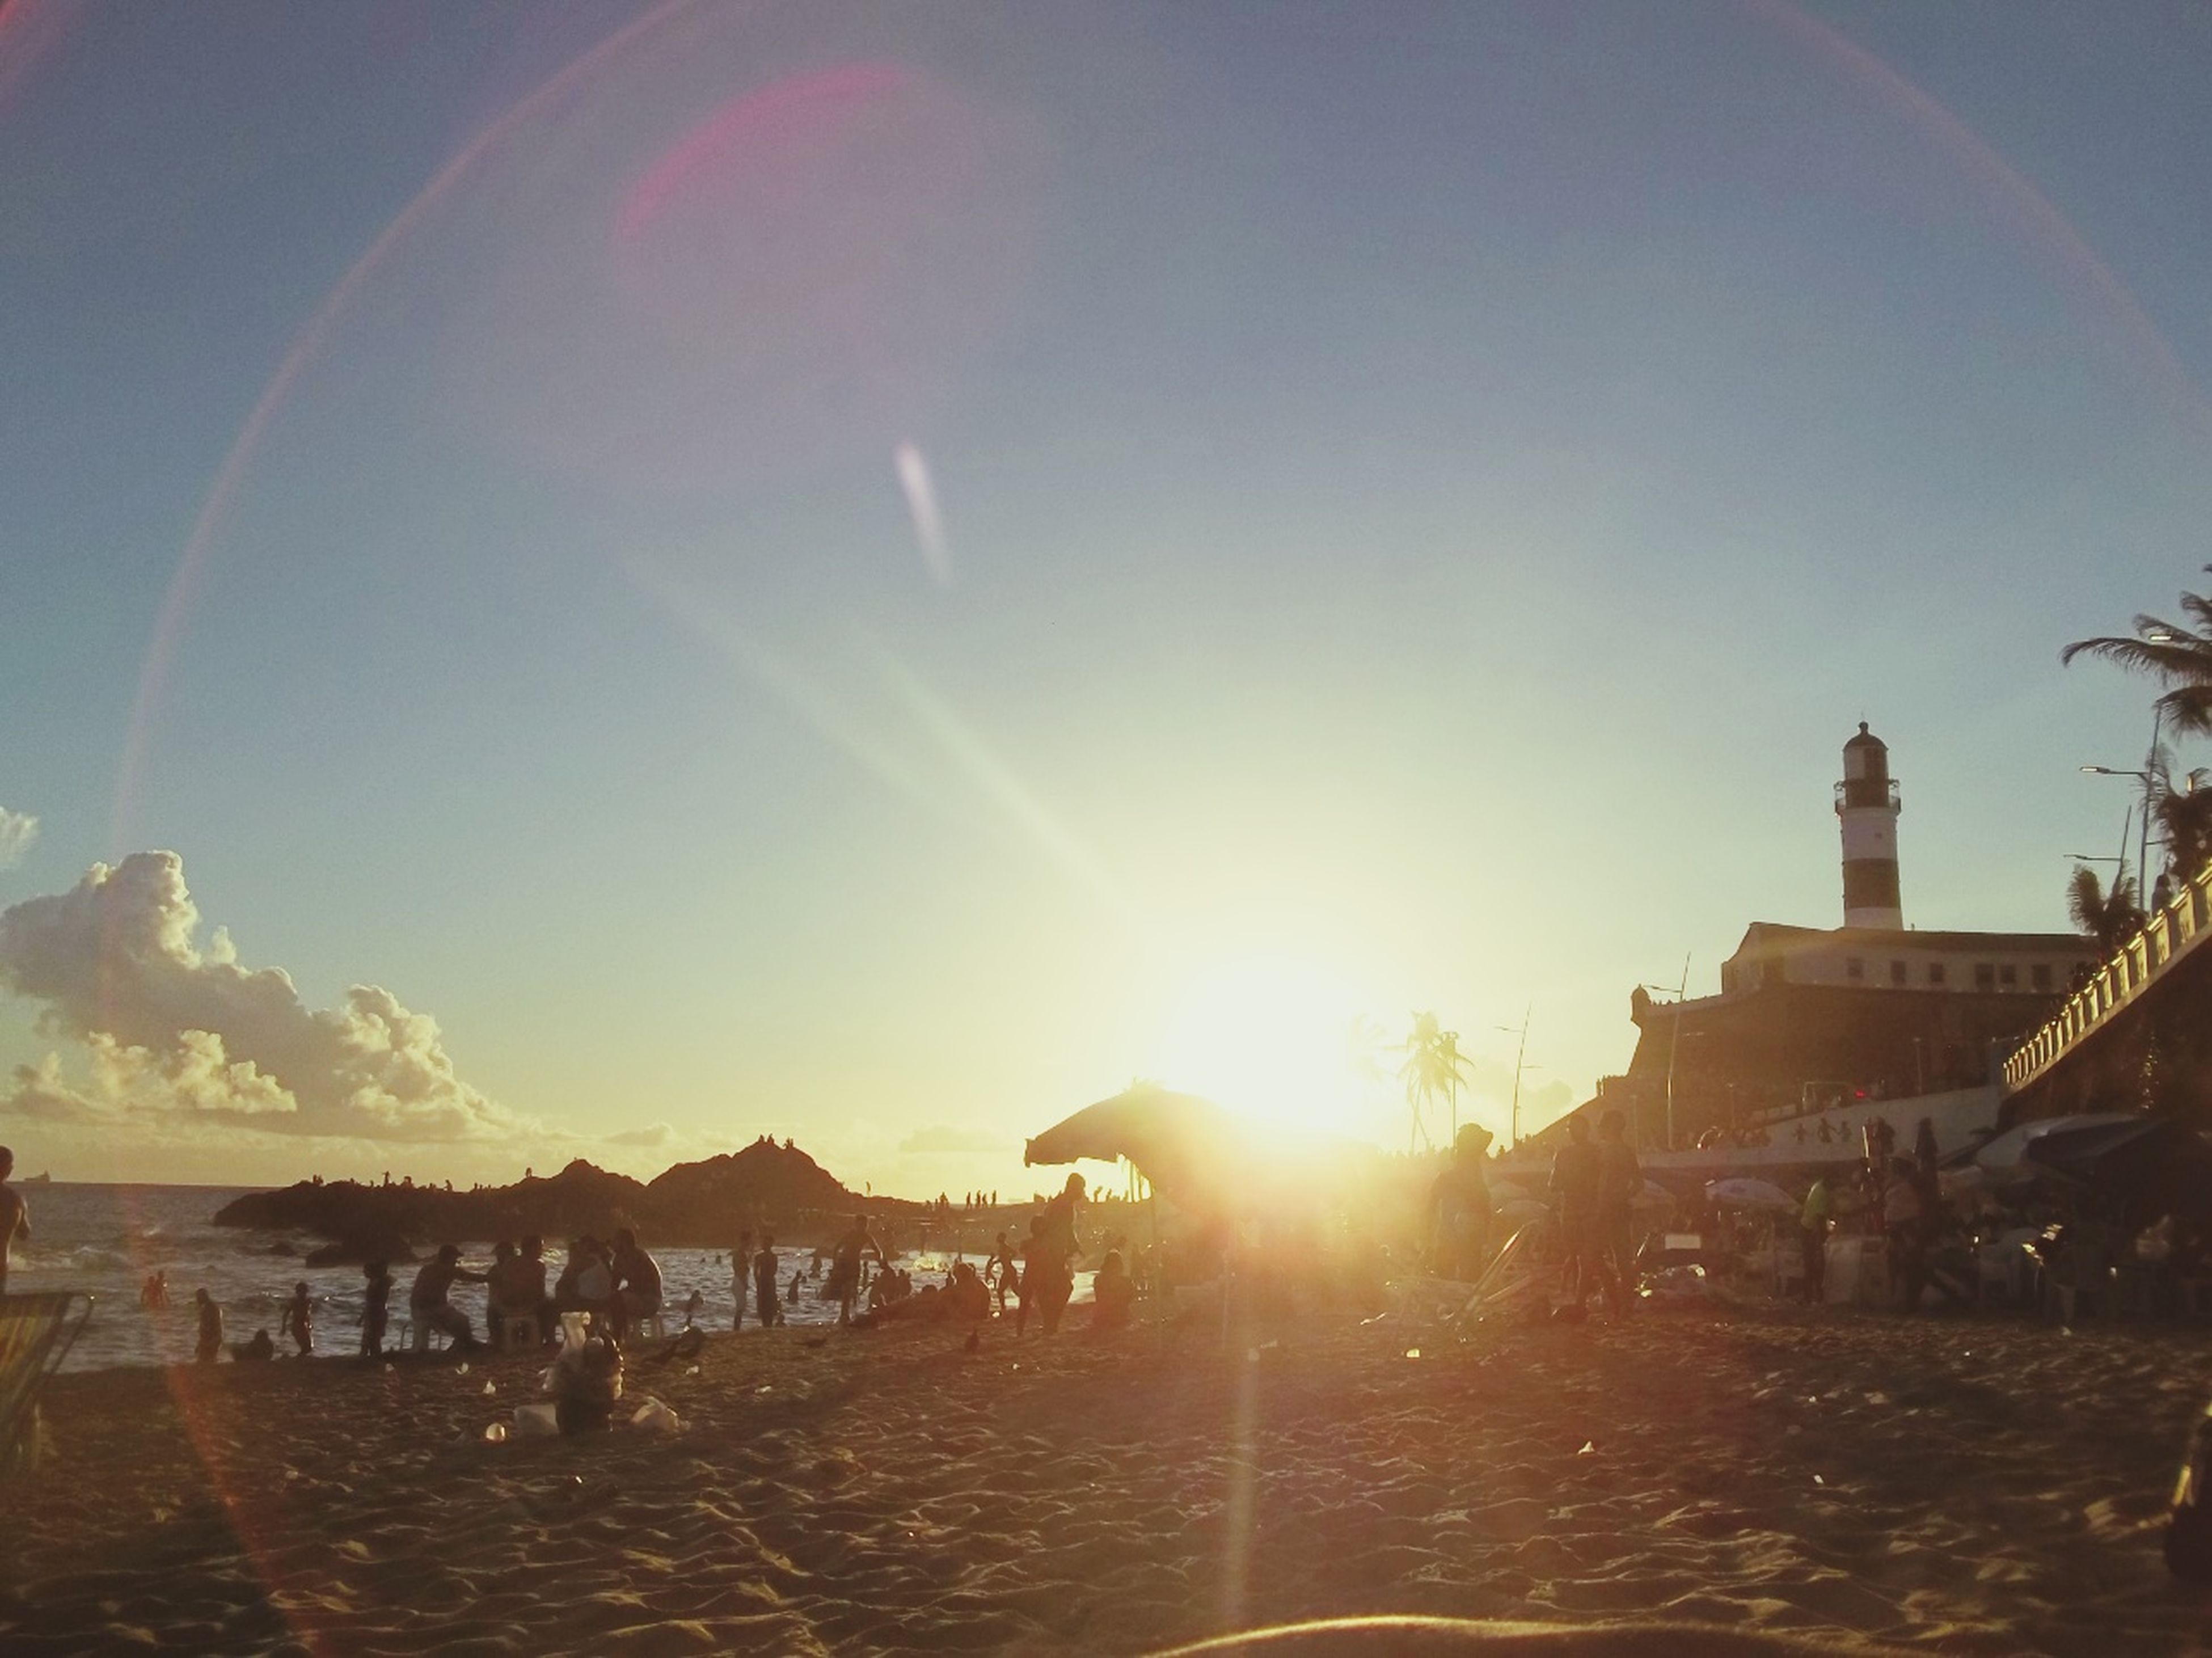 sun, sunbeam, lens flare, sunlight, built structure, building exterior, architecture, water, clear sky, sky, sea, bright, sunny, sunset, nature, scenics, beauty in nature, outdoors, copy space, beach